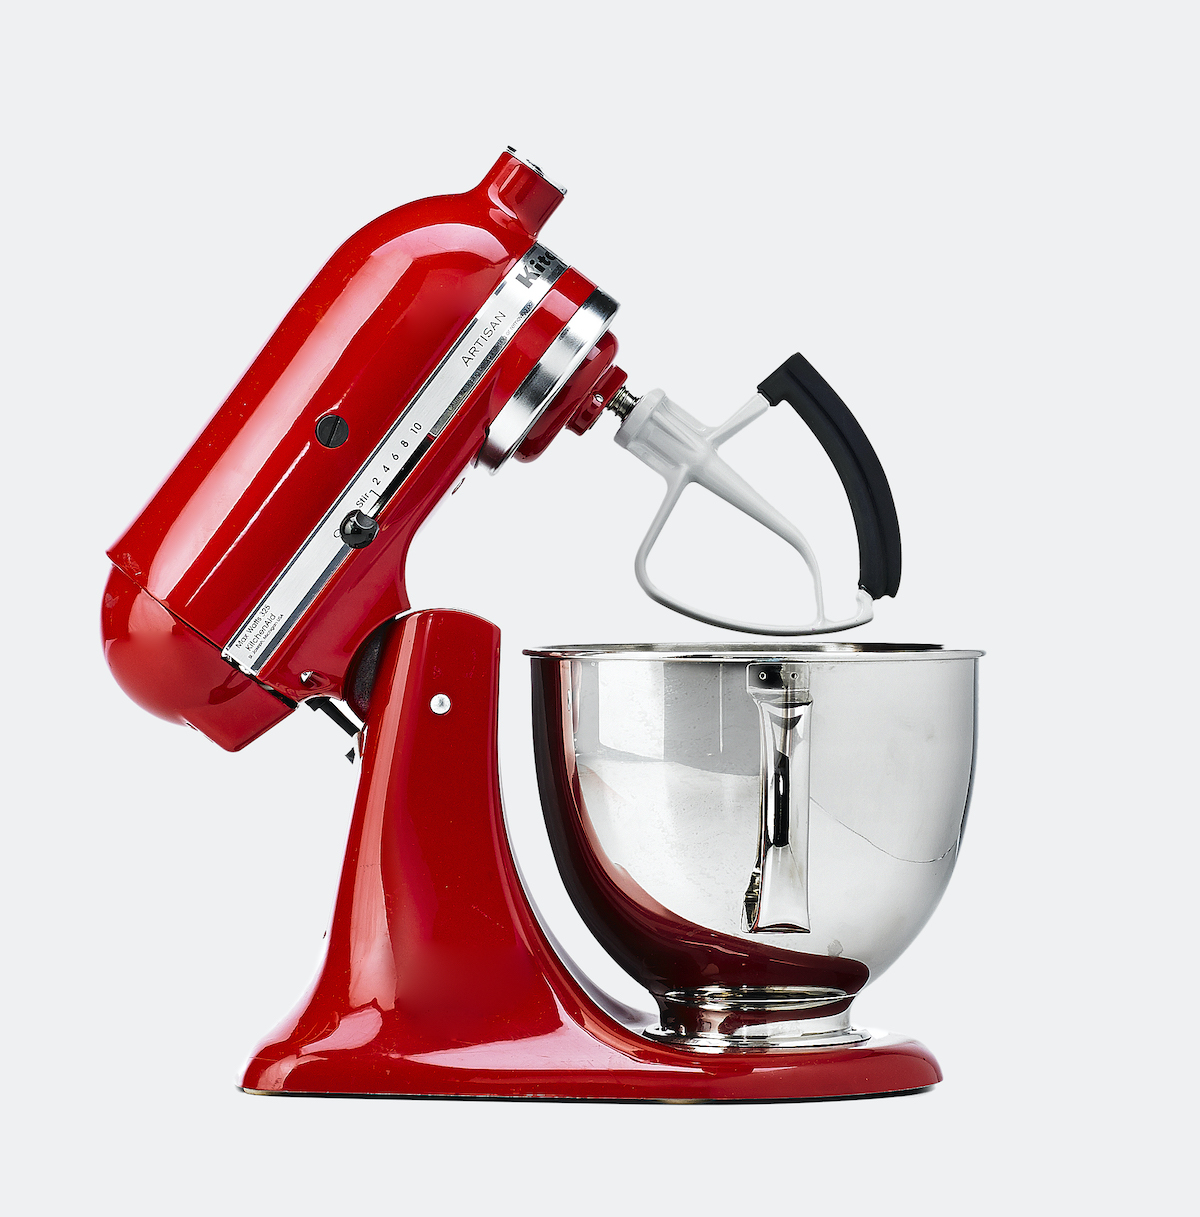 Kitchen Aid registry items deal on black Friday